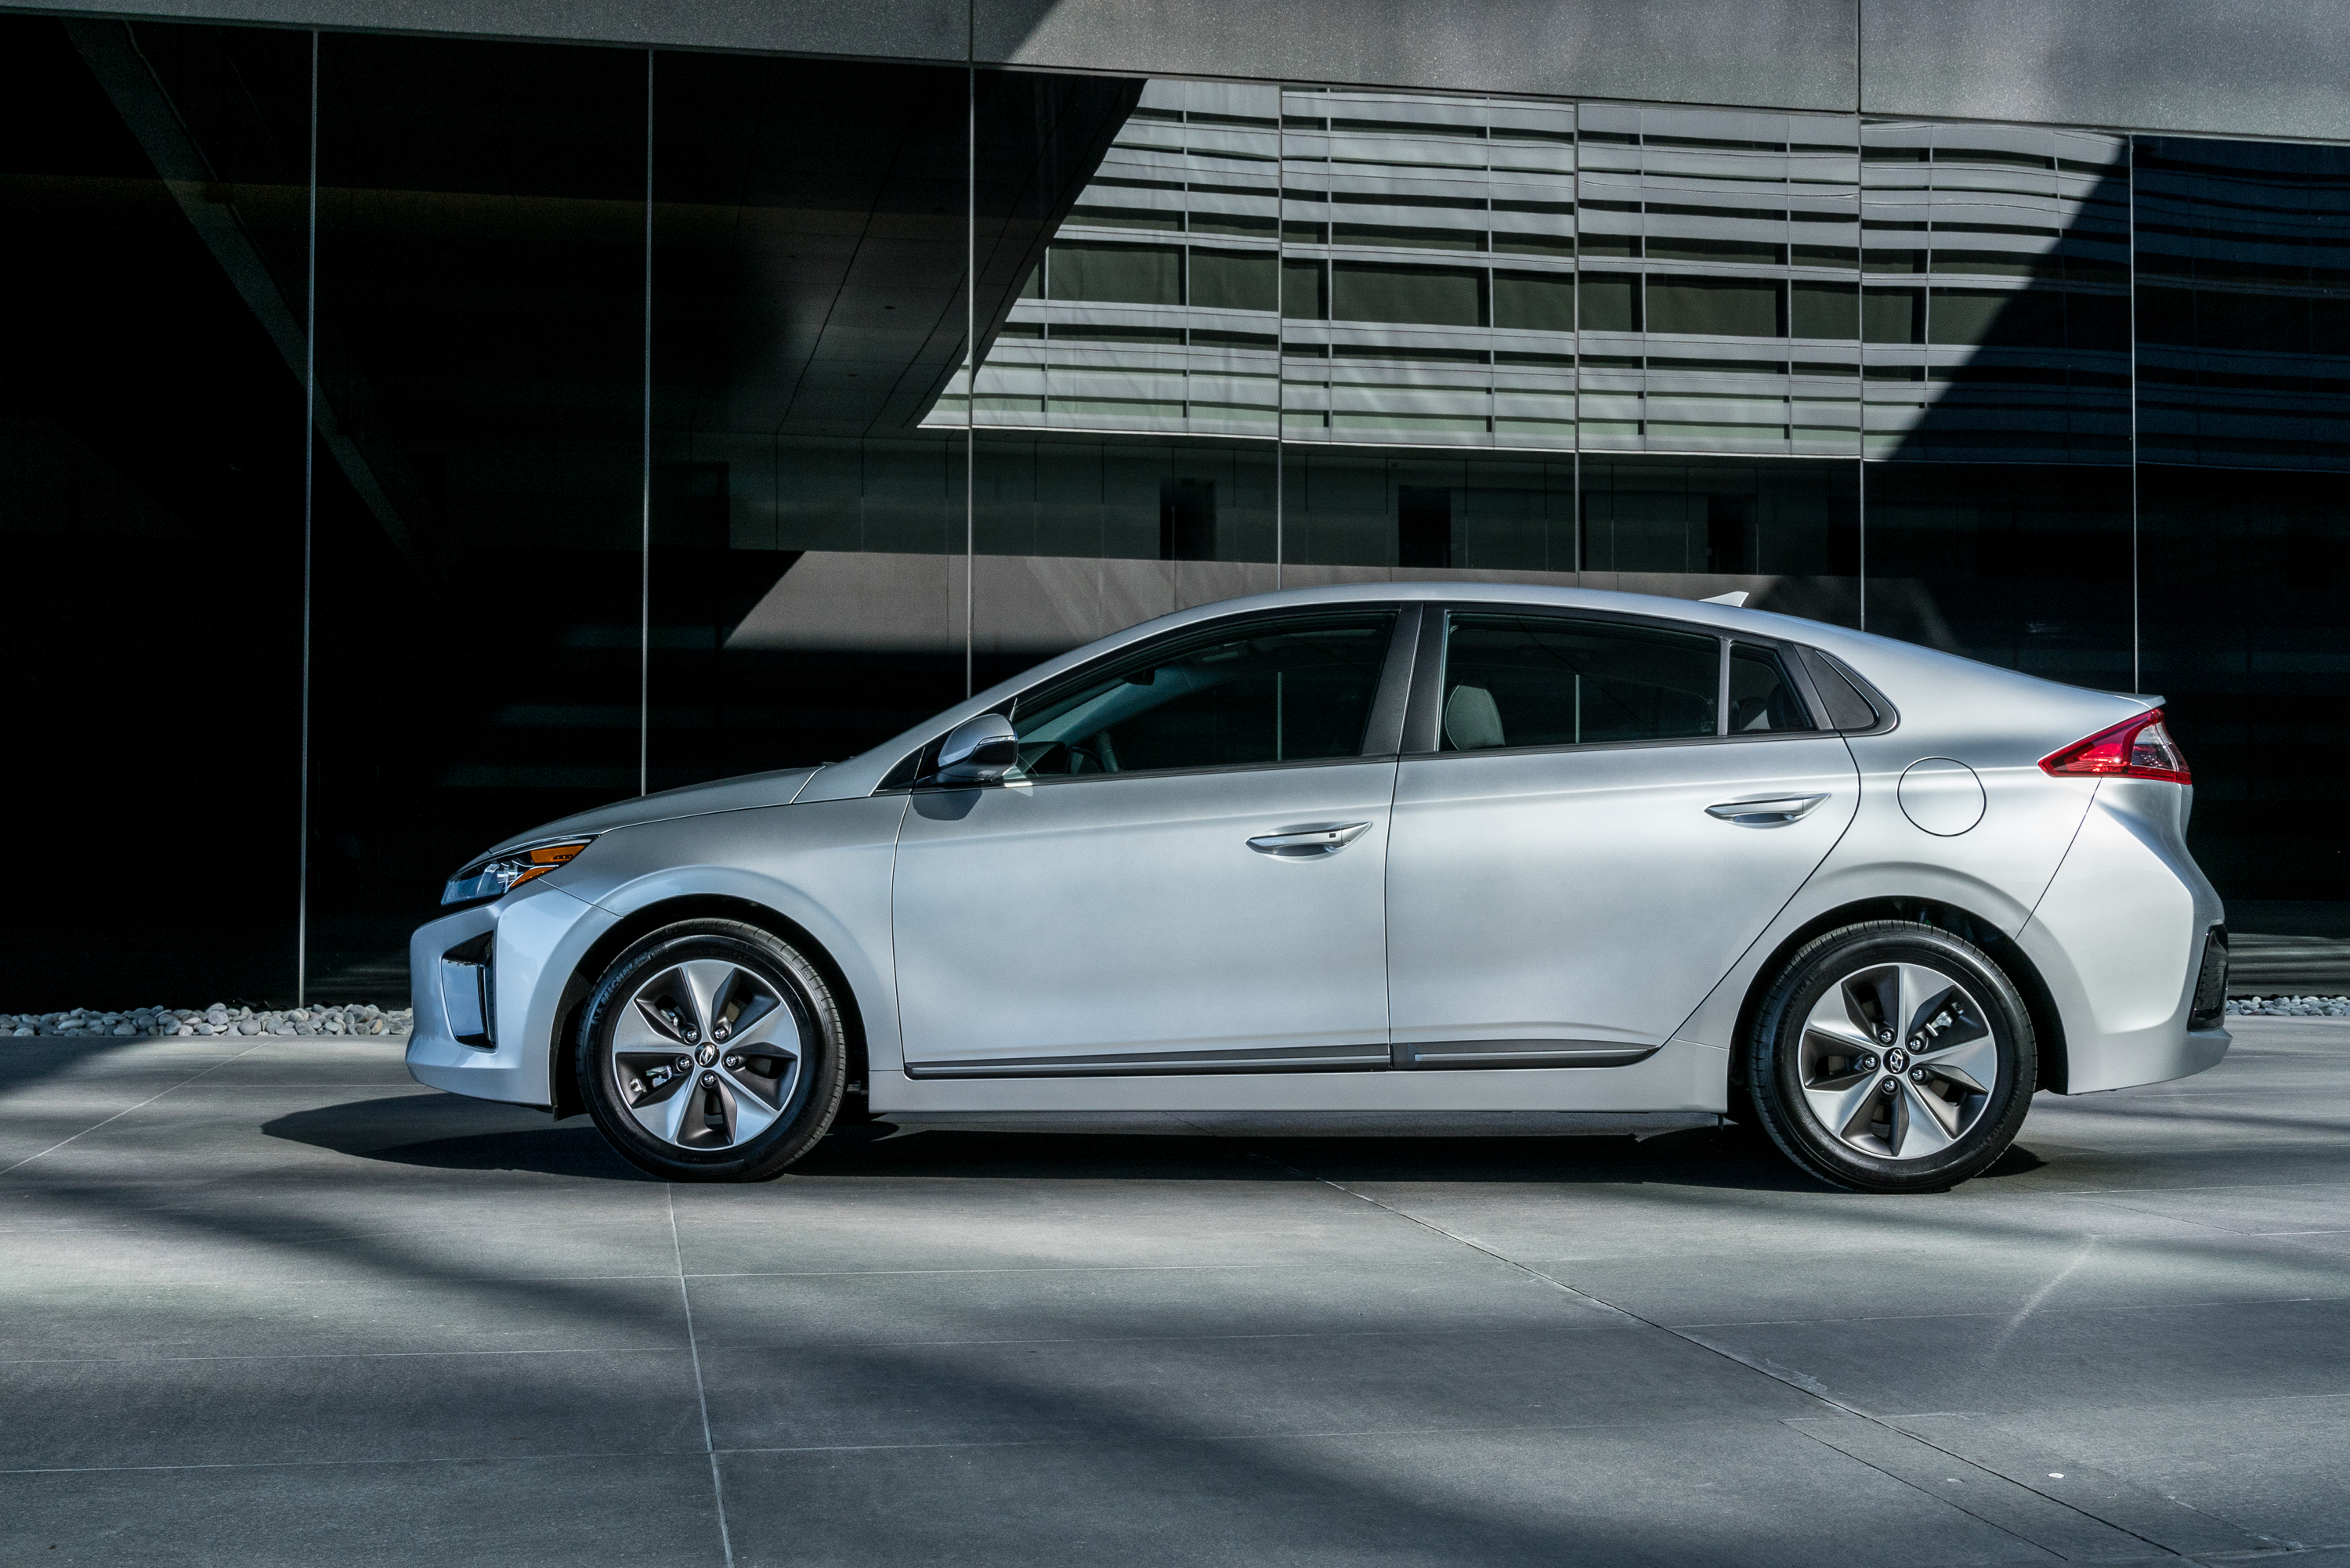 A 20 000 Budget And Need For 2nd Commuter Vehicle Ping The Ioniq Ev Up Oh That Whole Not Destroying Climate Thing Too 2017 Hyundai